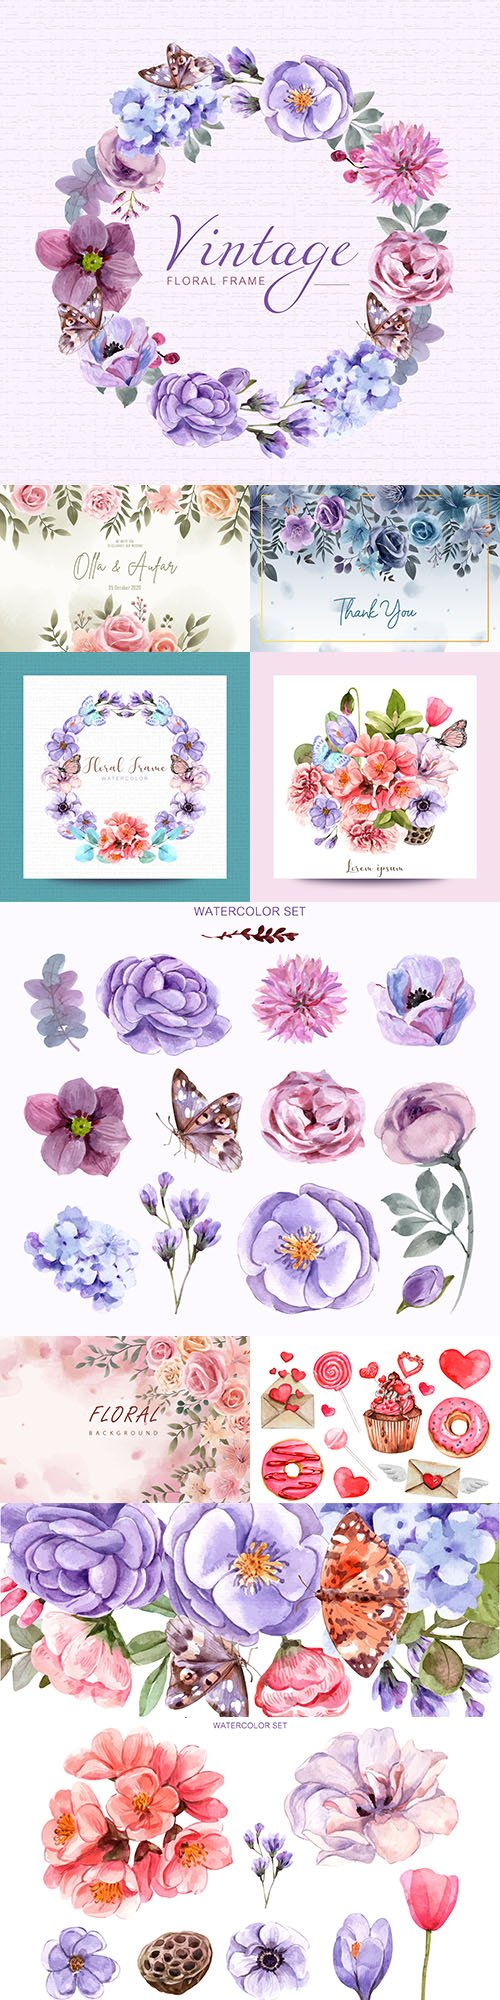 Watercolor flowers and compositions set for design